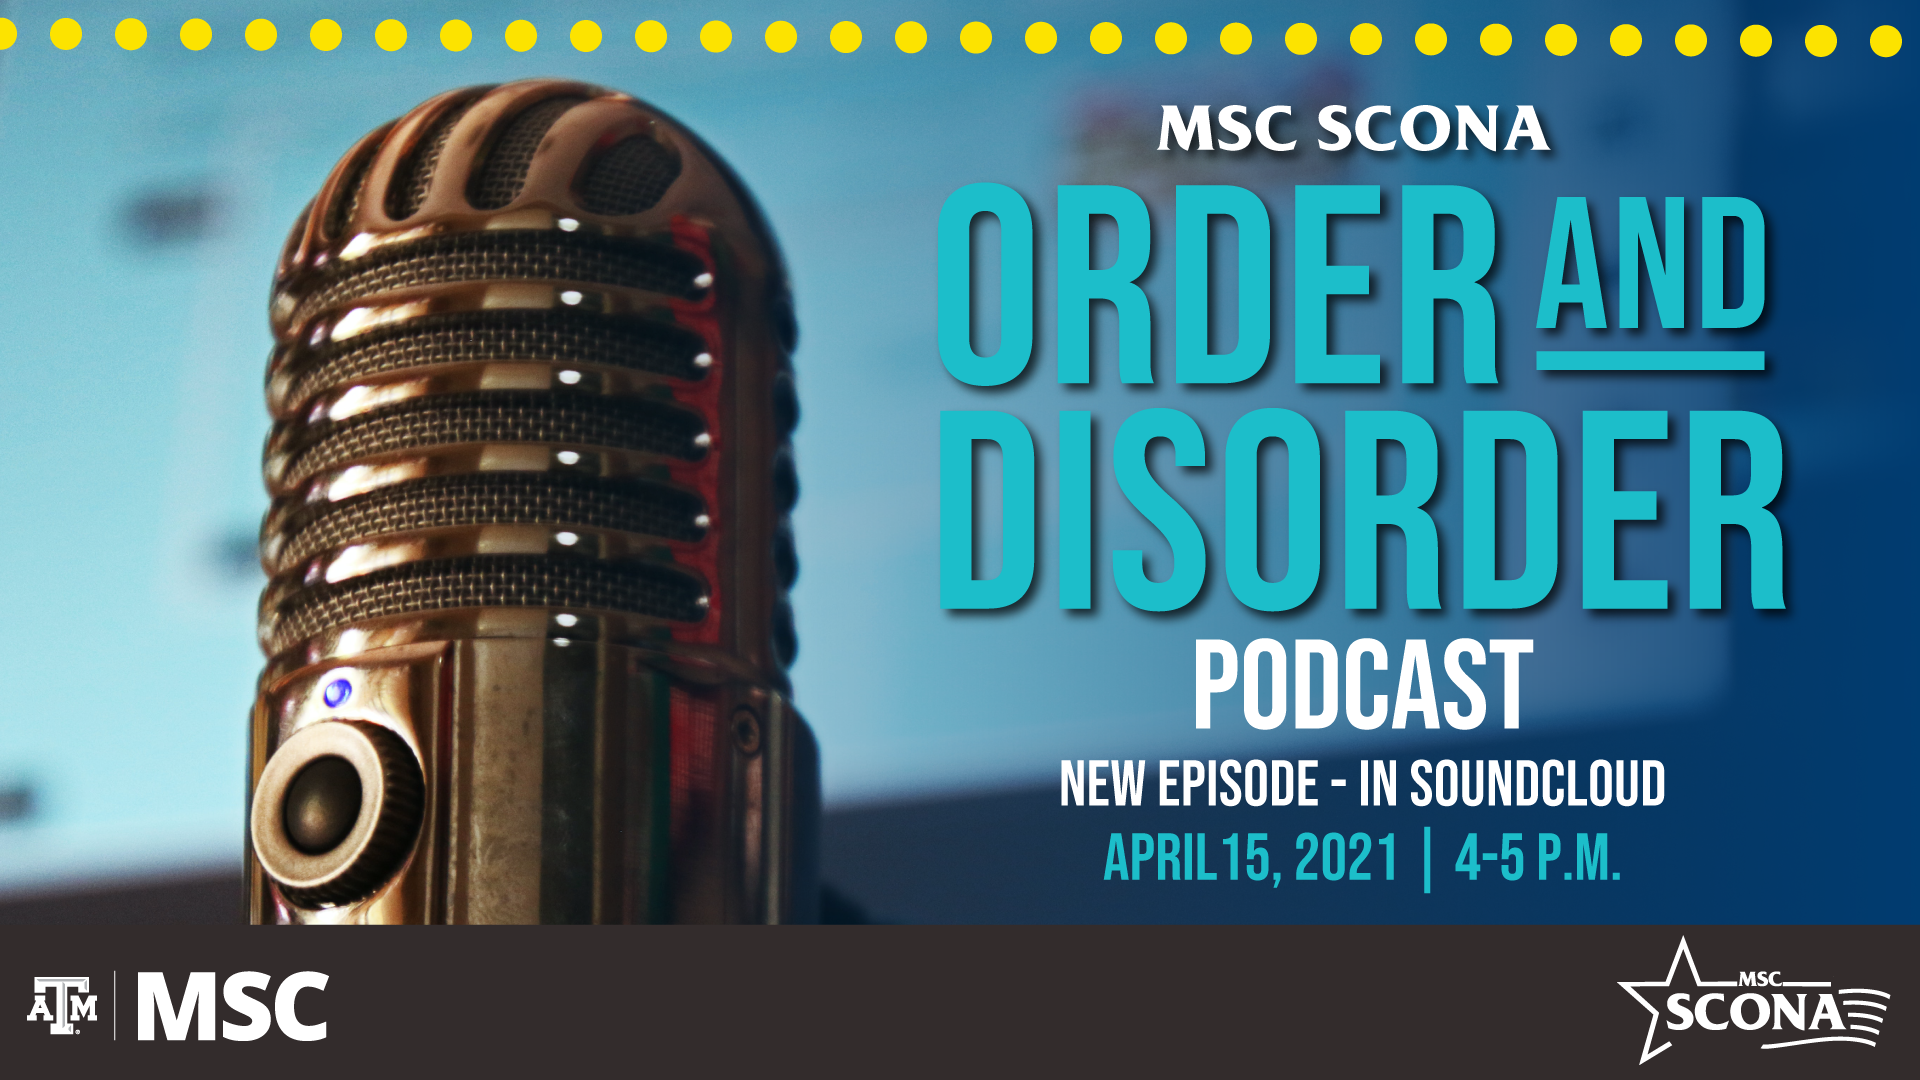 MSC SCONA Order and Disorder Podcast, New Episode-in Soundcloud, April 15, 2021 from 4-5 p.m.